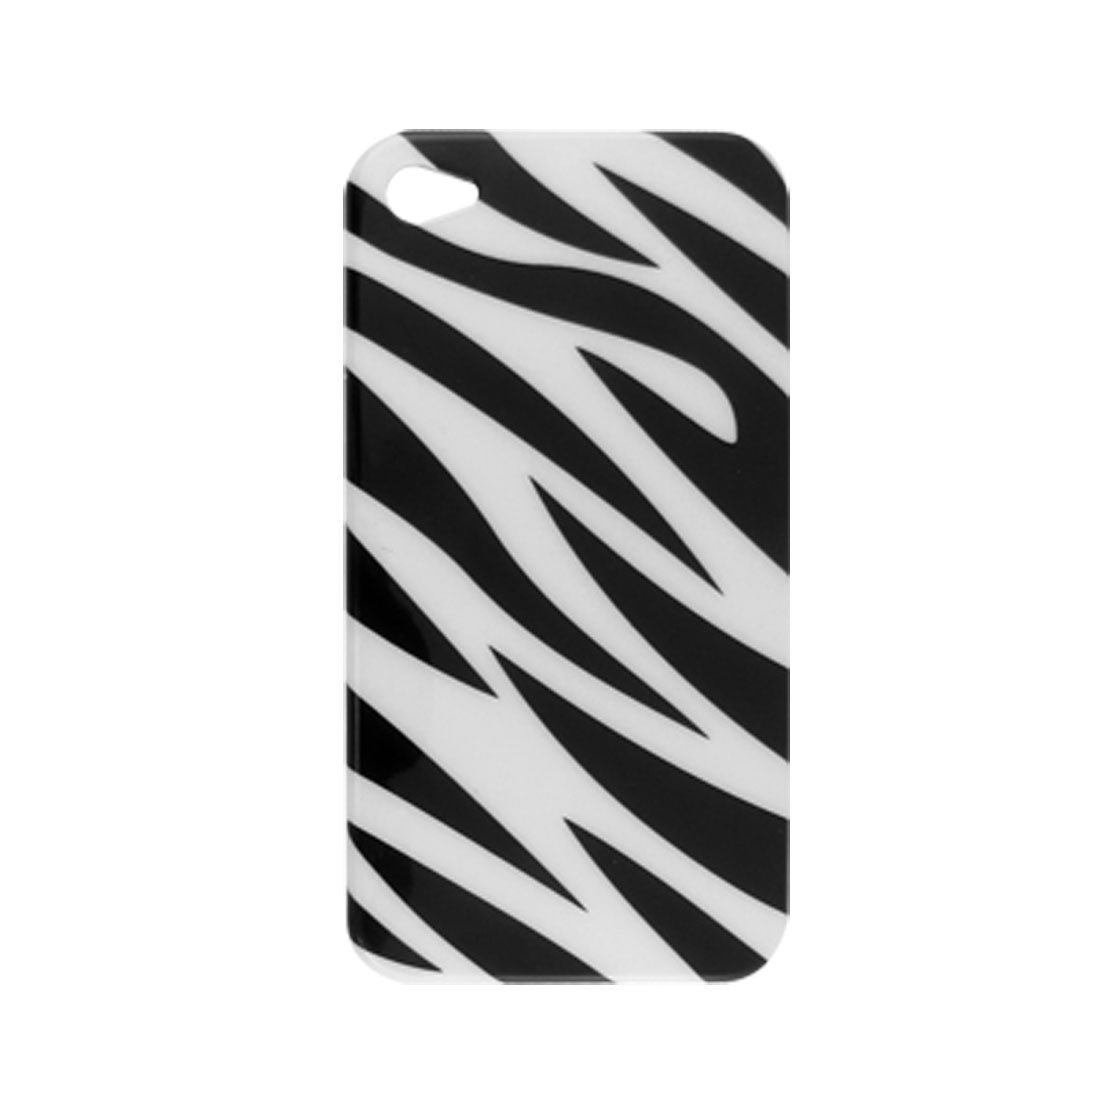 Smooth Hard Plastic IMD Zebra Pattern Back Case Shell for iPhone 4 4G